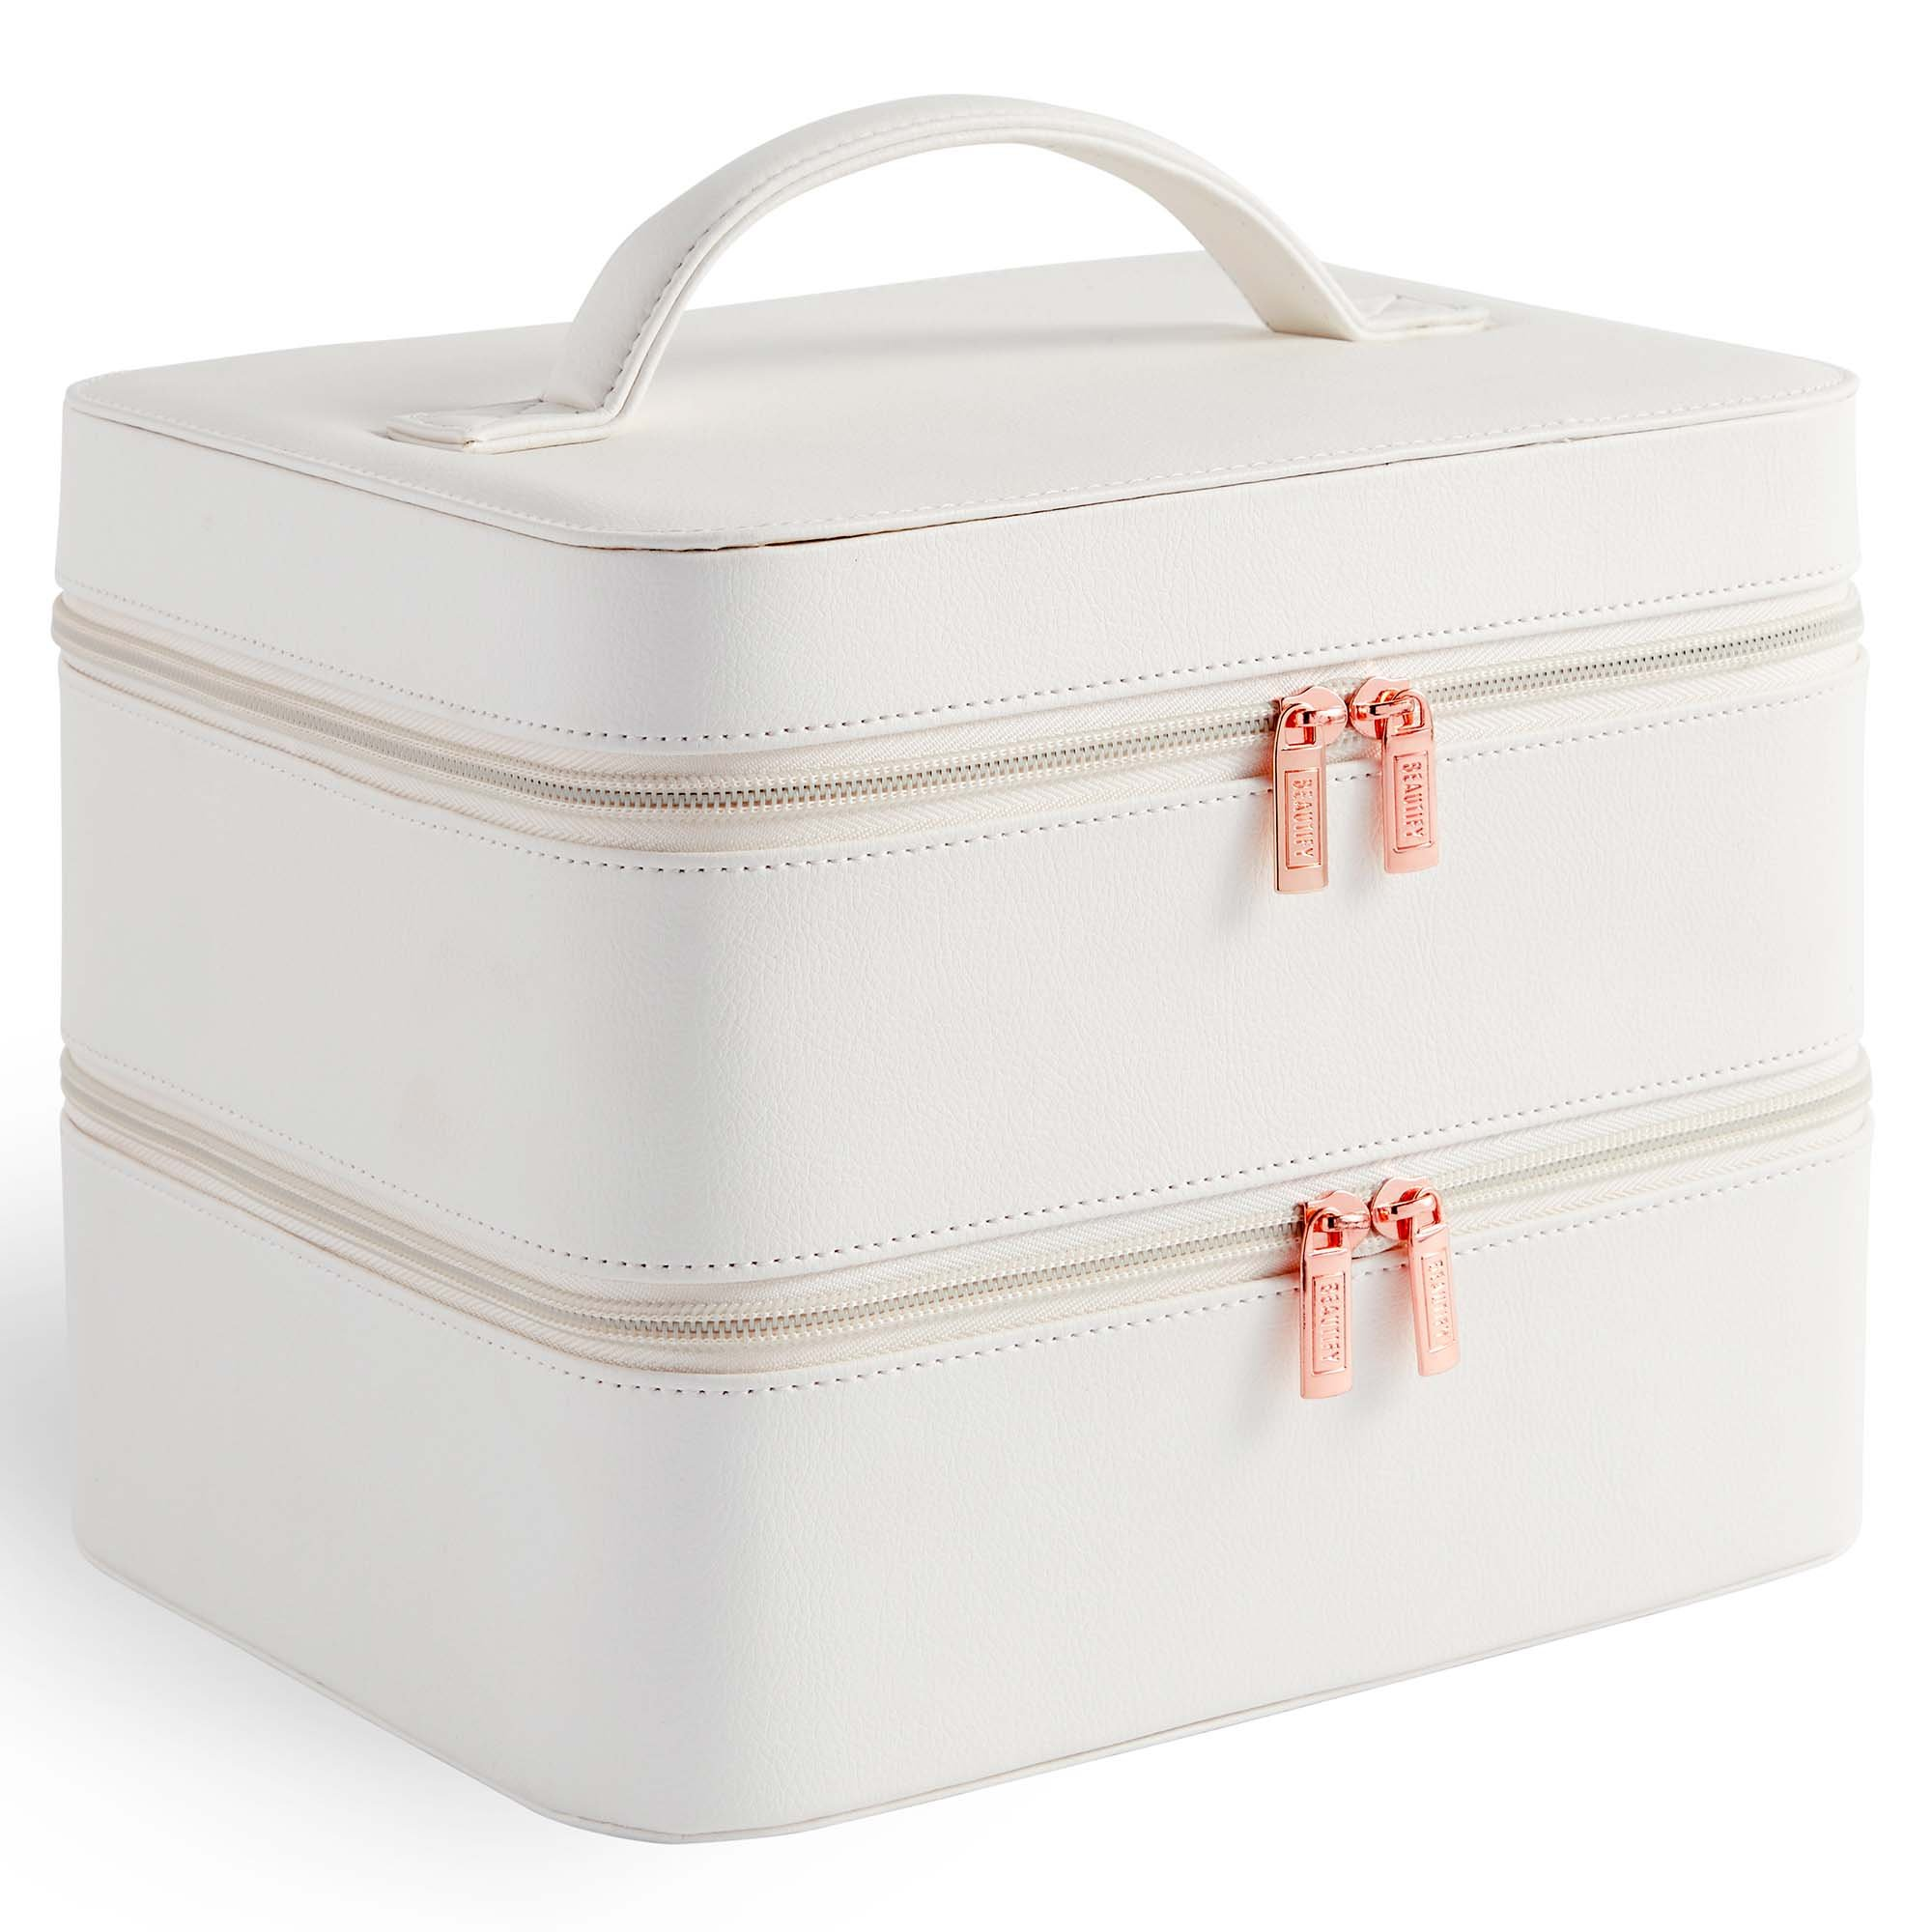 Beautify White Faux Leather 2 Tier Cosmetic Case Including Grid Compartment with Removable Dividers, for Jewelry, Make Up, Cosmetics, Brushes and More